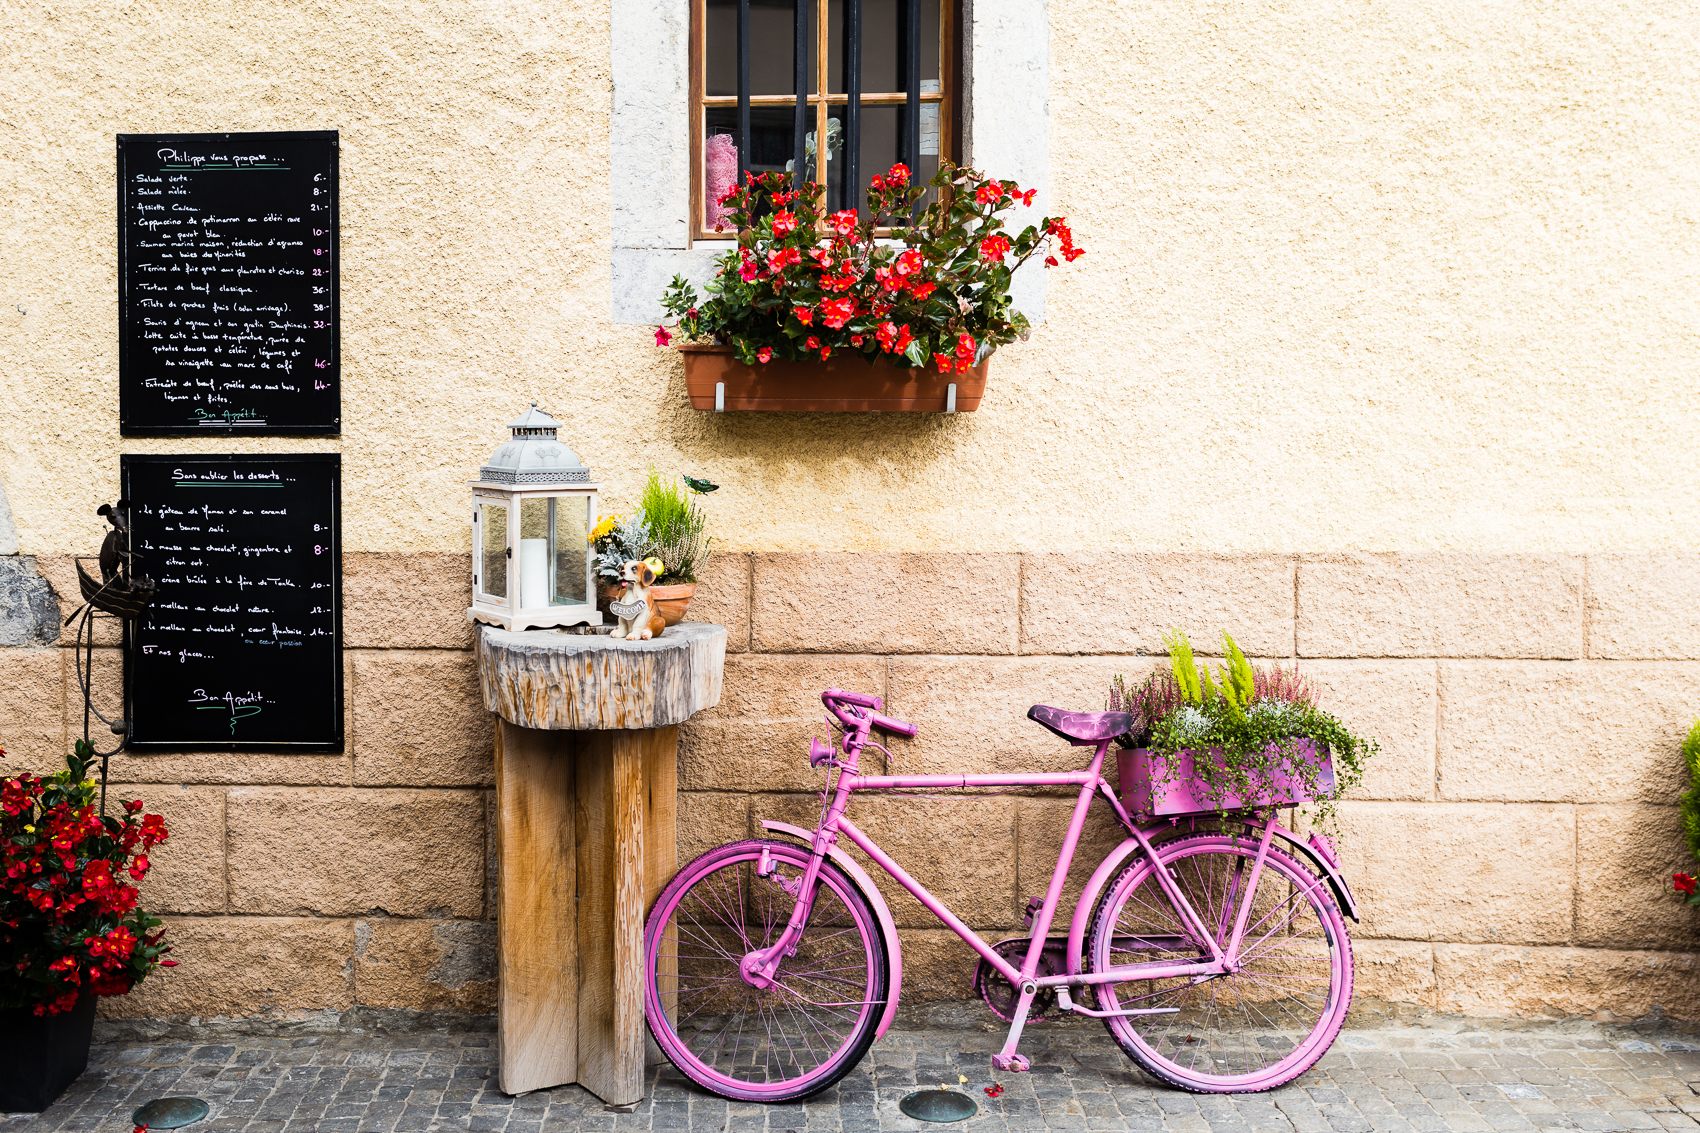 the colours of the flowers, the decor and the pretty pink bike that just pulled it all together - stopping long enough to take it in…we don't have this back home!